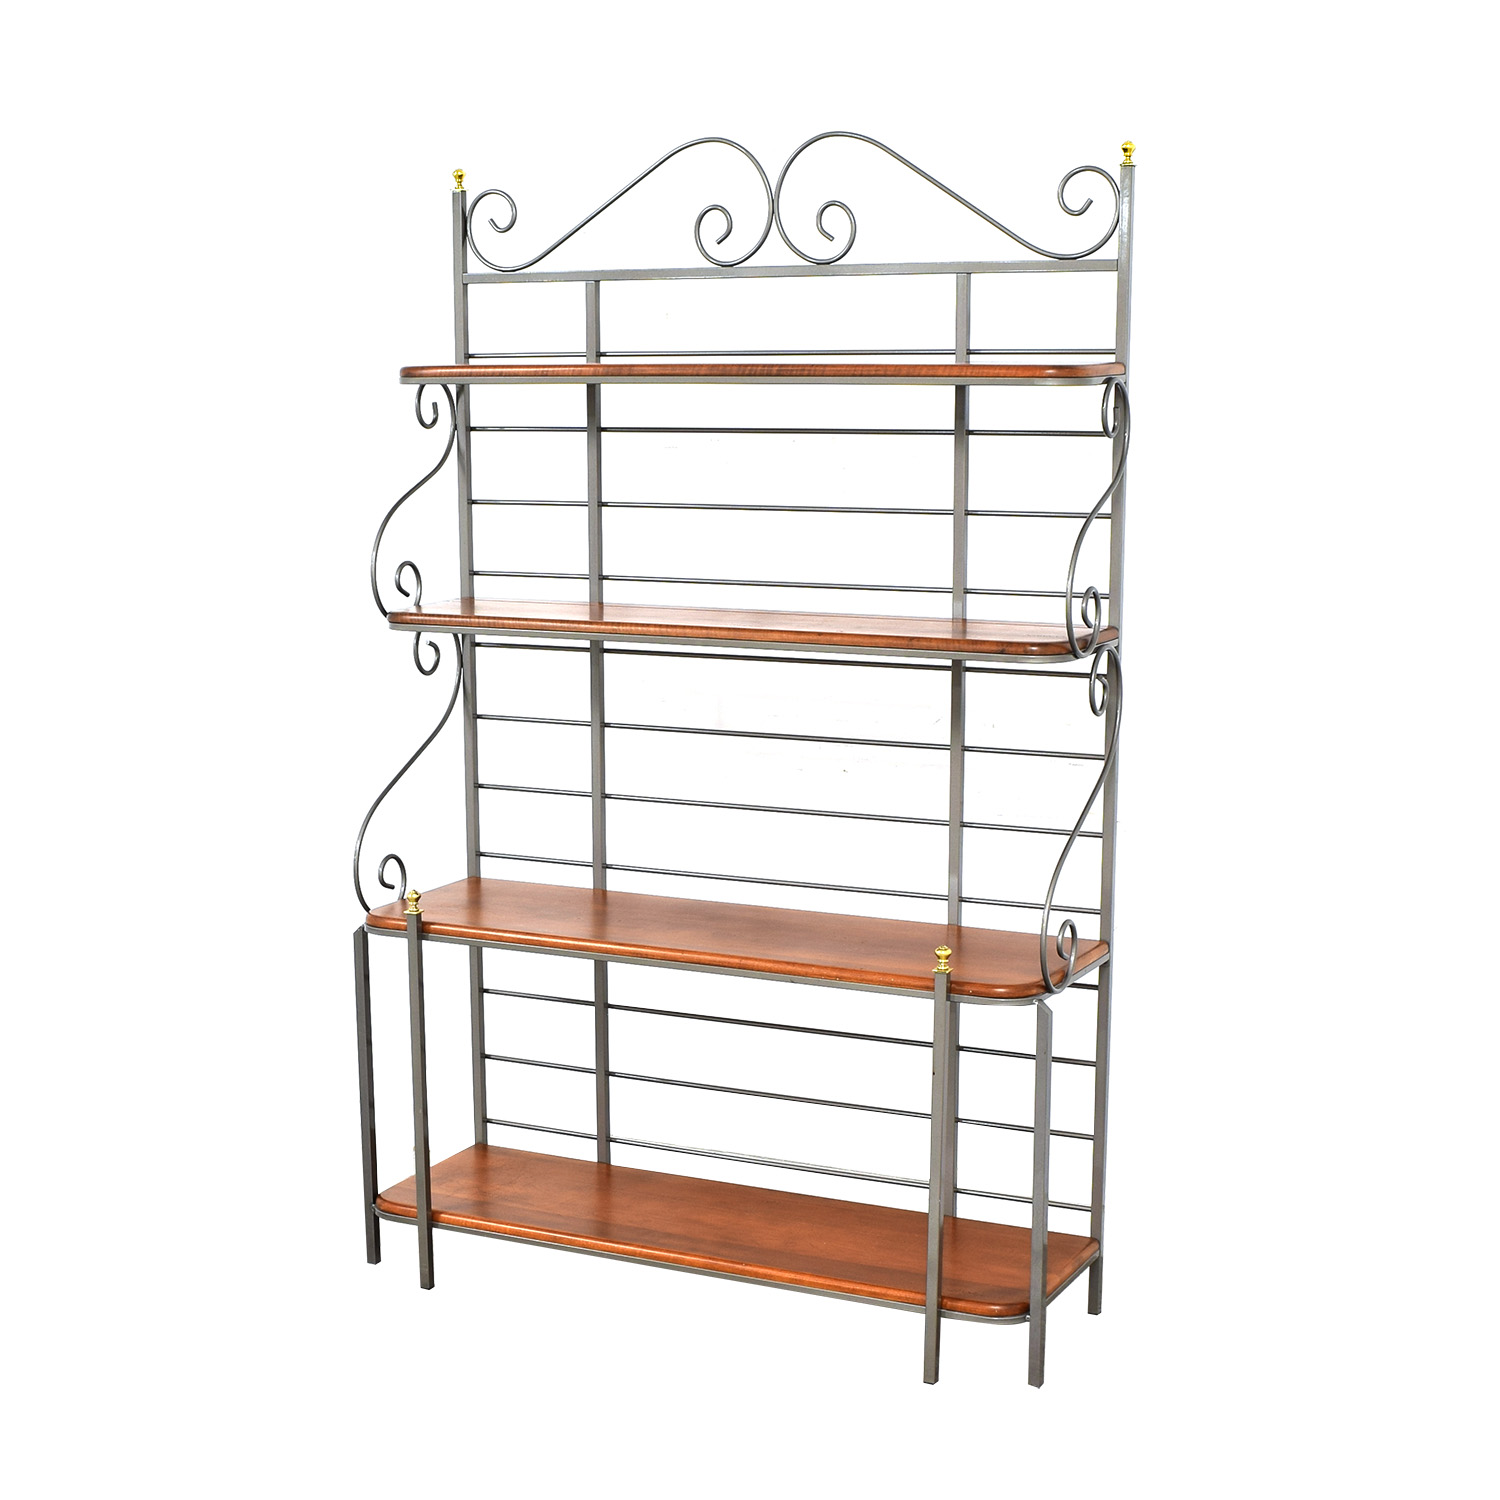 Charleston Forge Charleston Forge Bakers Rack pa